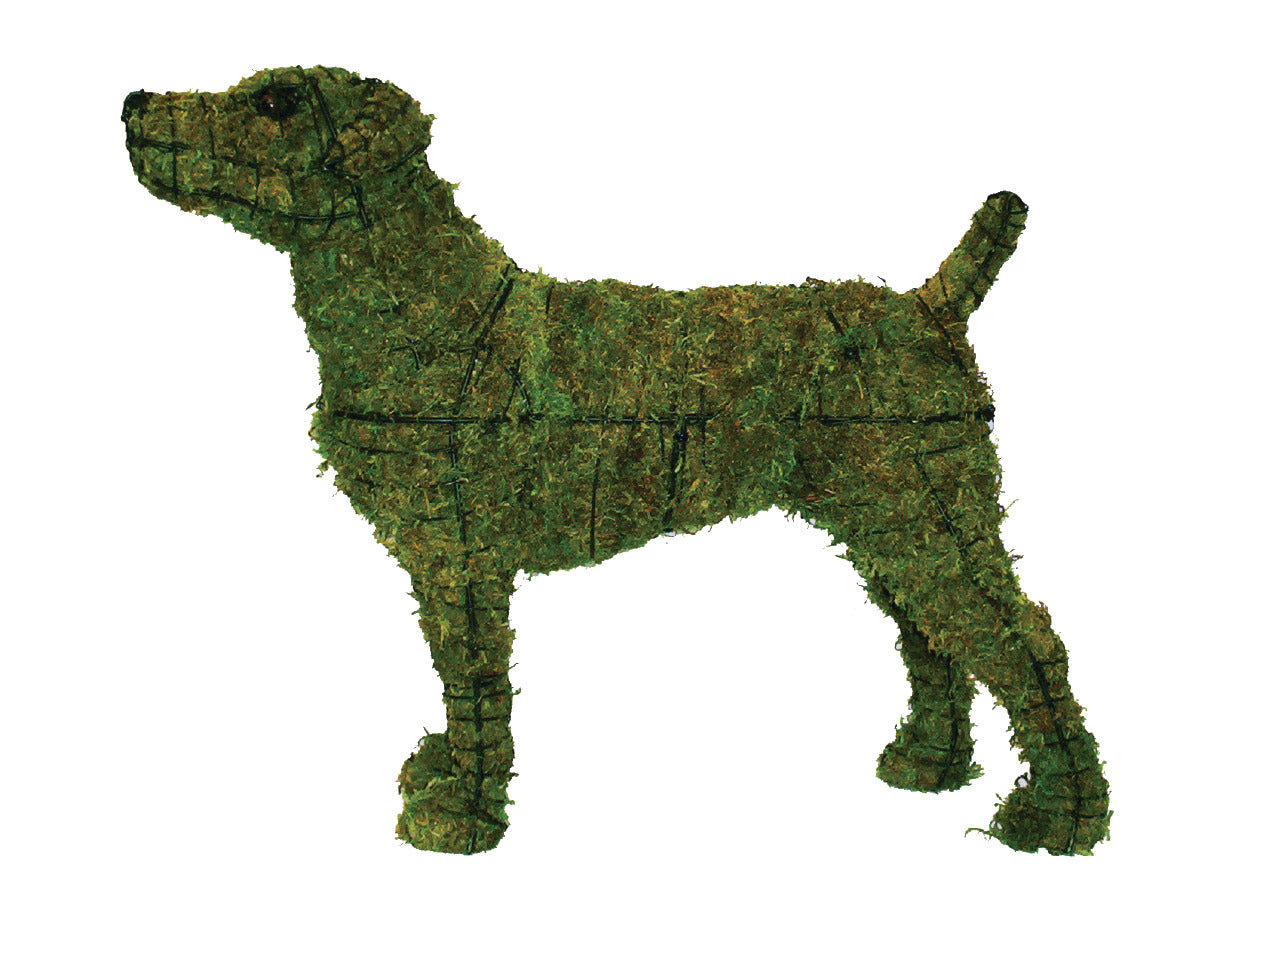 Jack Russell steel topiary frame filled with green dyed sphagnum moss - Henderson Garden Supply